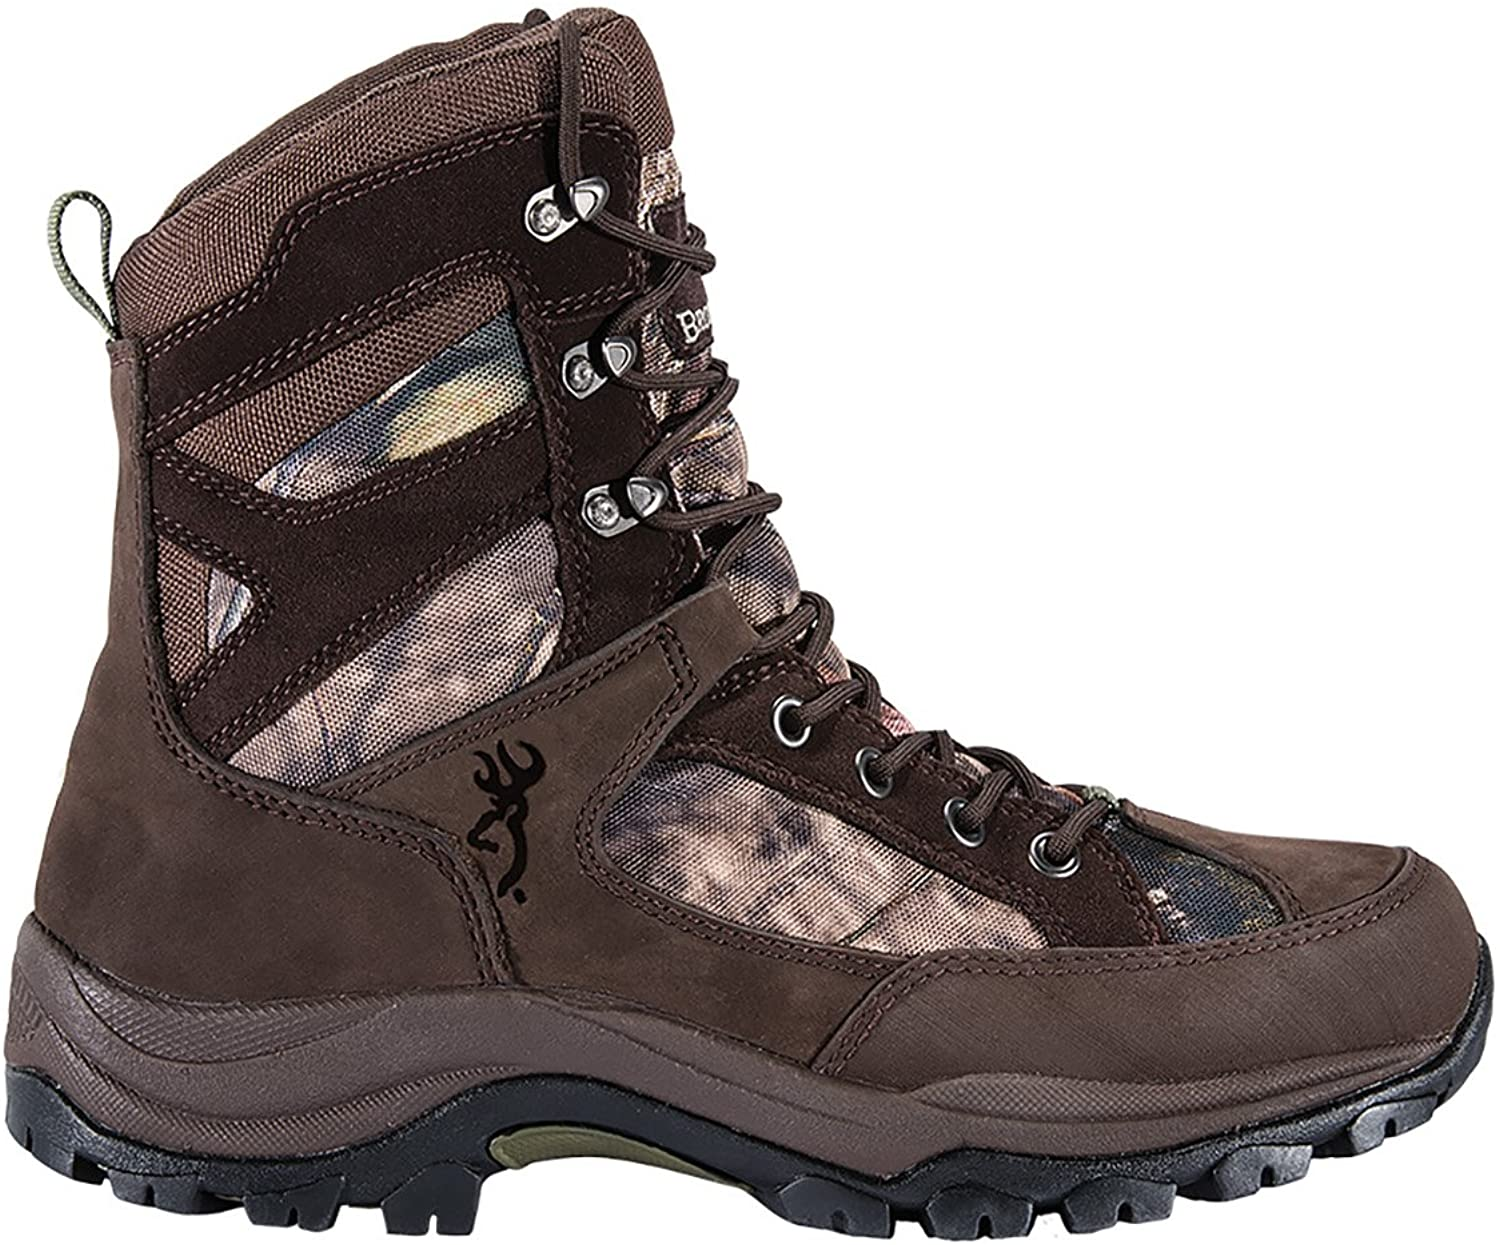 Browning Mens Buck Pursuit 8in Oxford Hunting Boots - 400g, Bracken/Mossy Oak F000005620230